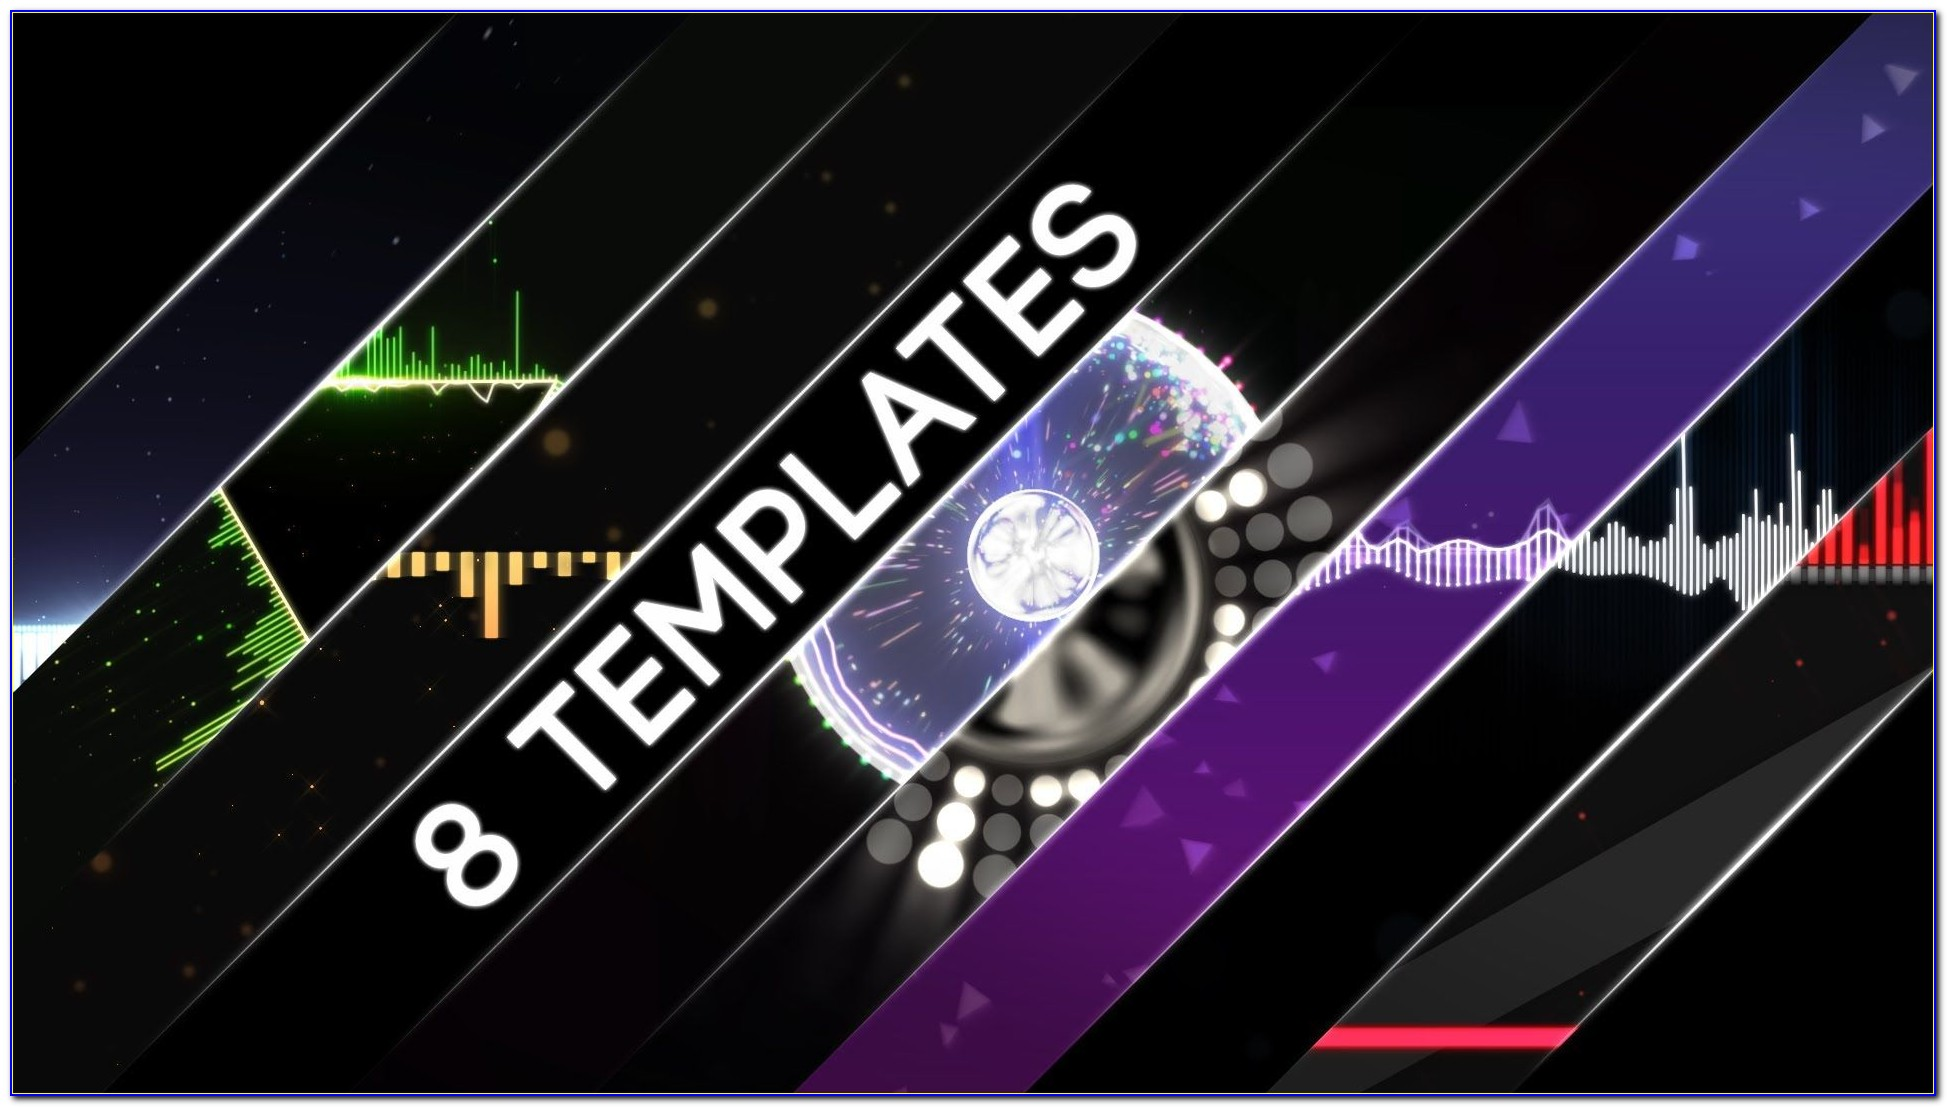 Free Download Templates For Adobe After Effects Cs6